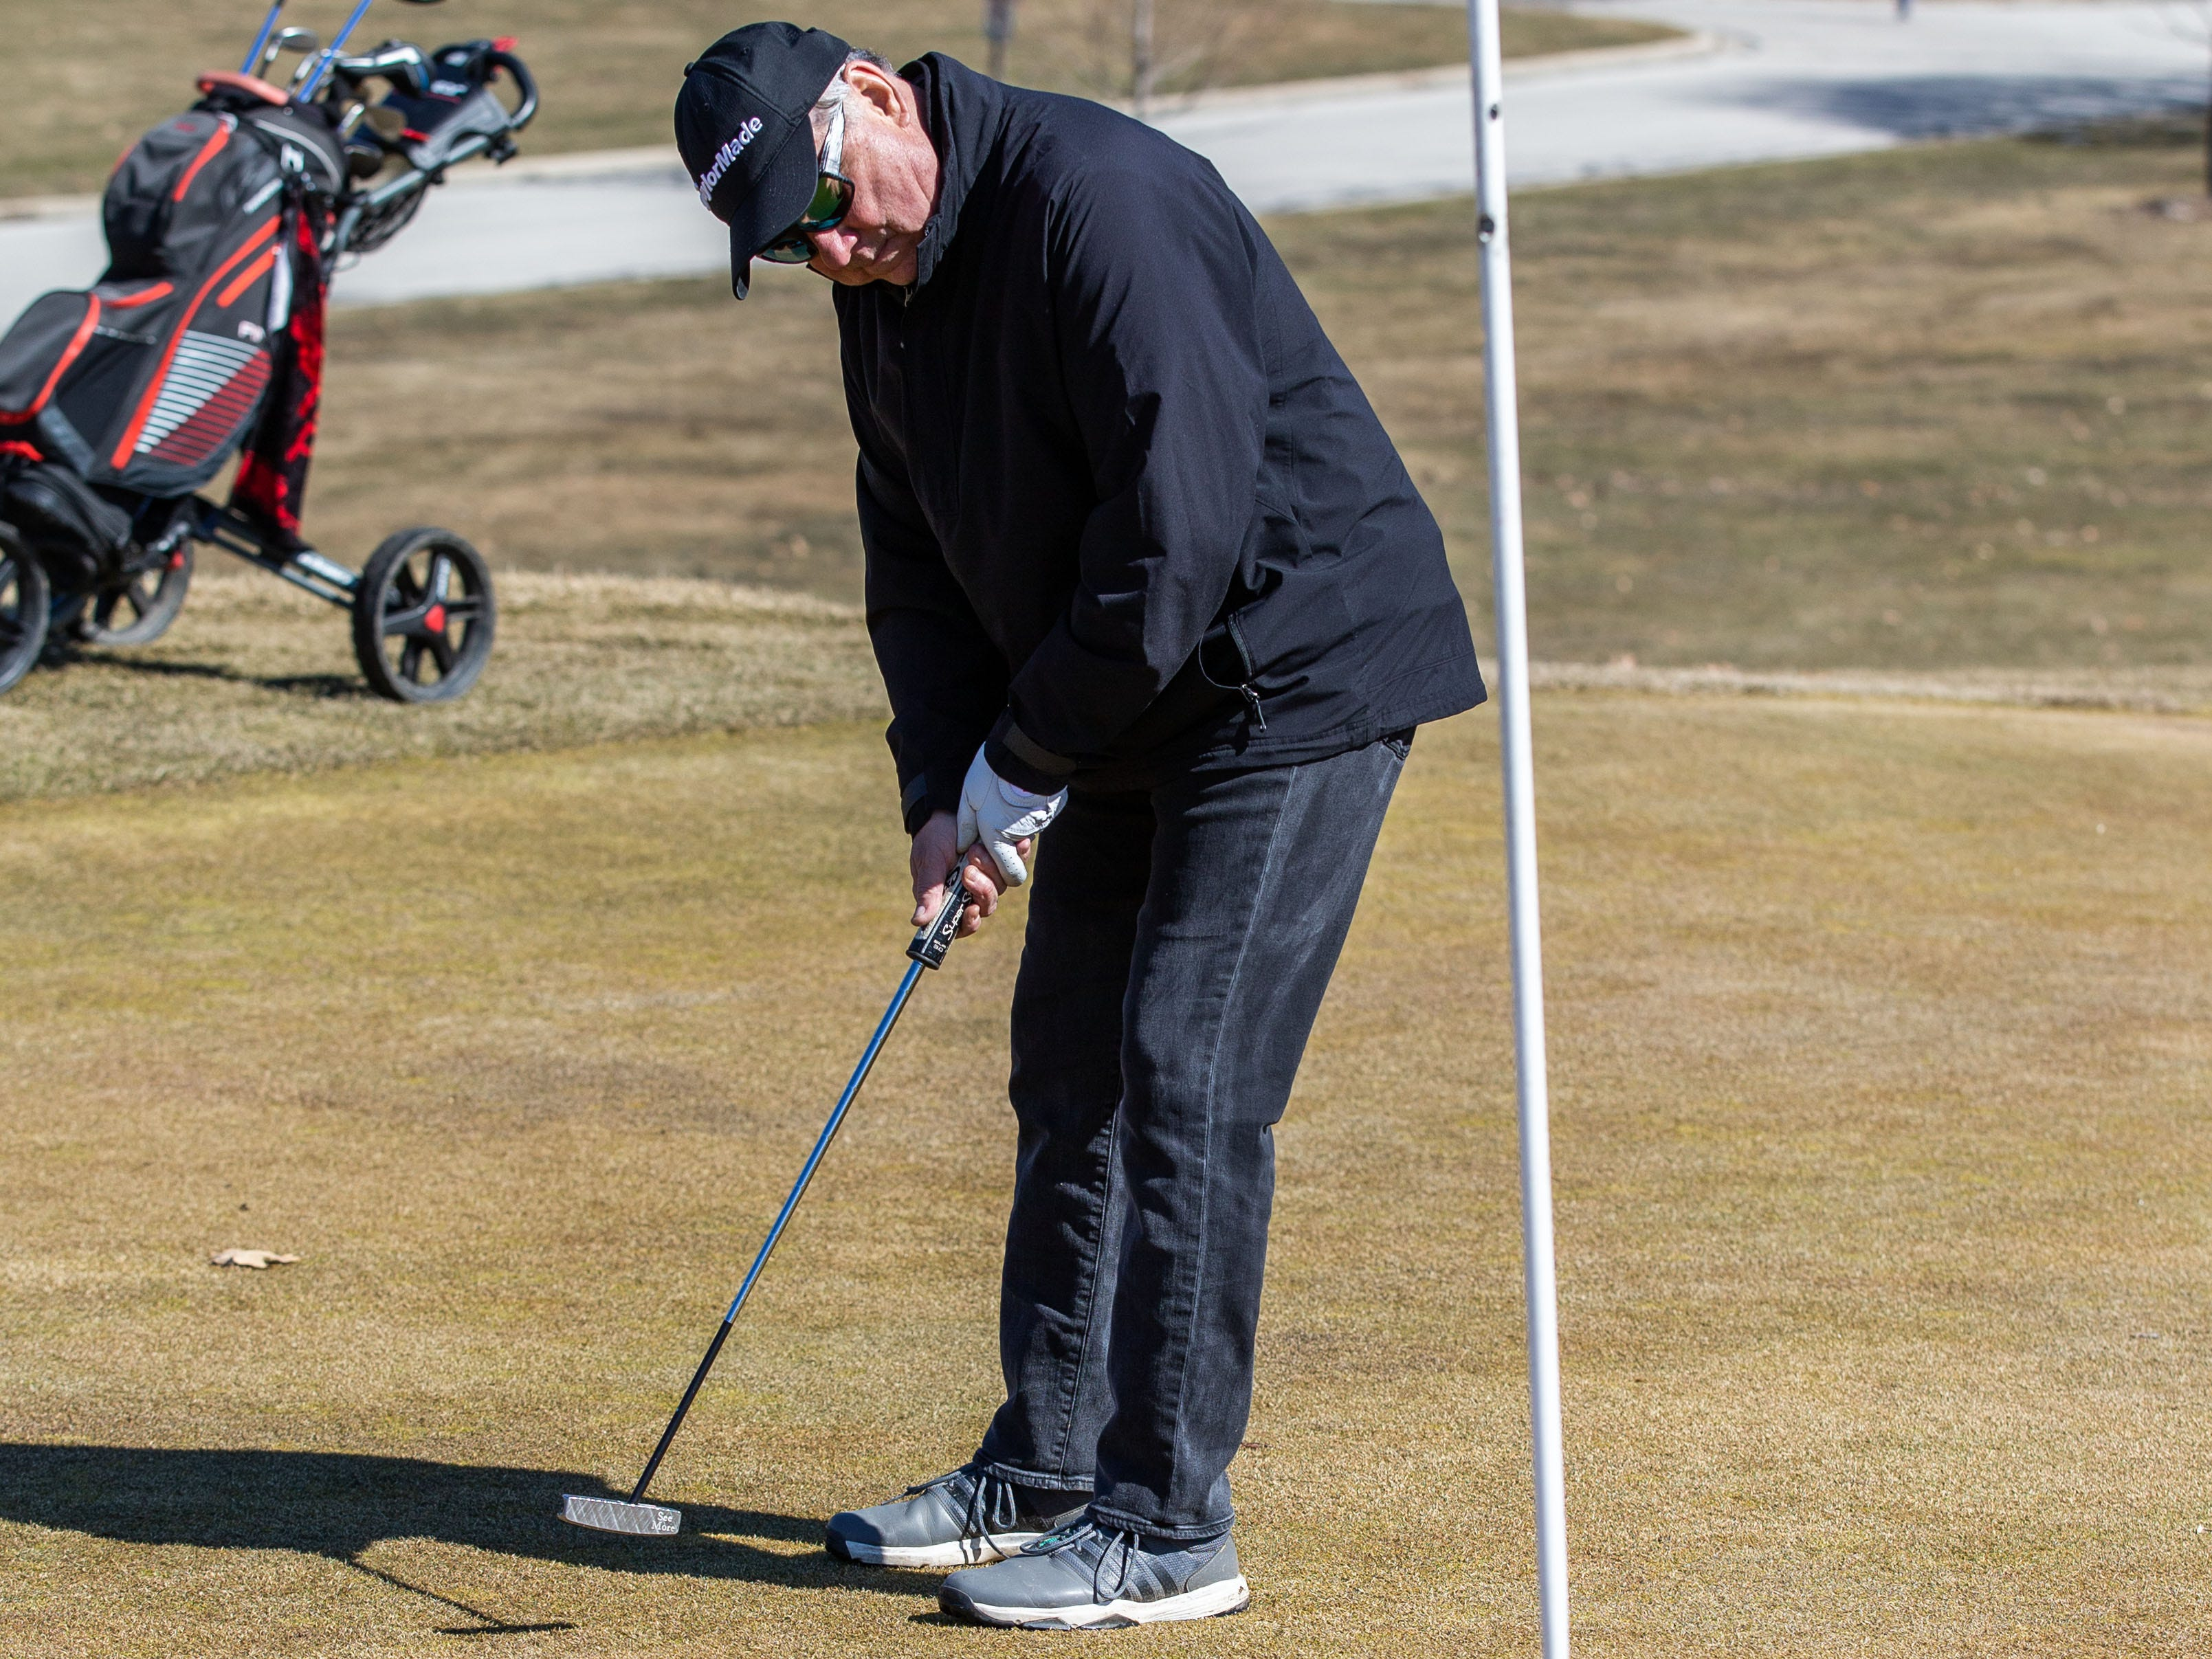 Chuck Wolf of West Allis sinks a putt at Whitnall Park Golf Course in Franklin on Saturday, March 23, 2019. Warm sunny weather lured many enthusiasts outside to enjoy the game.